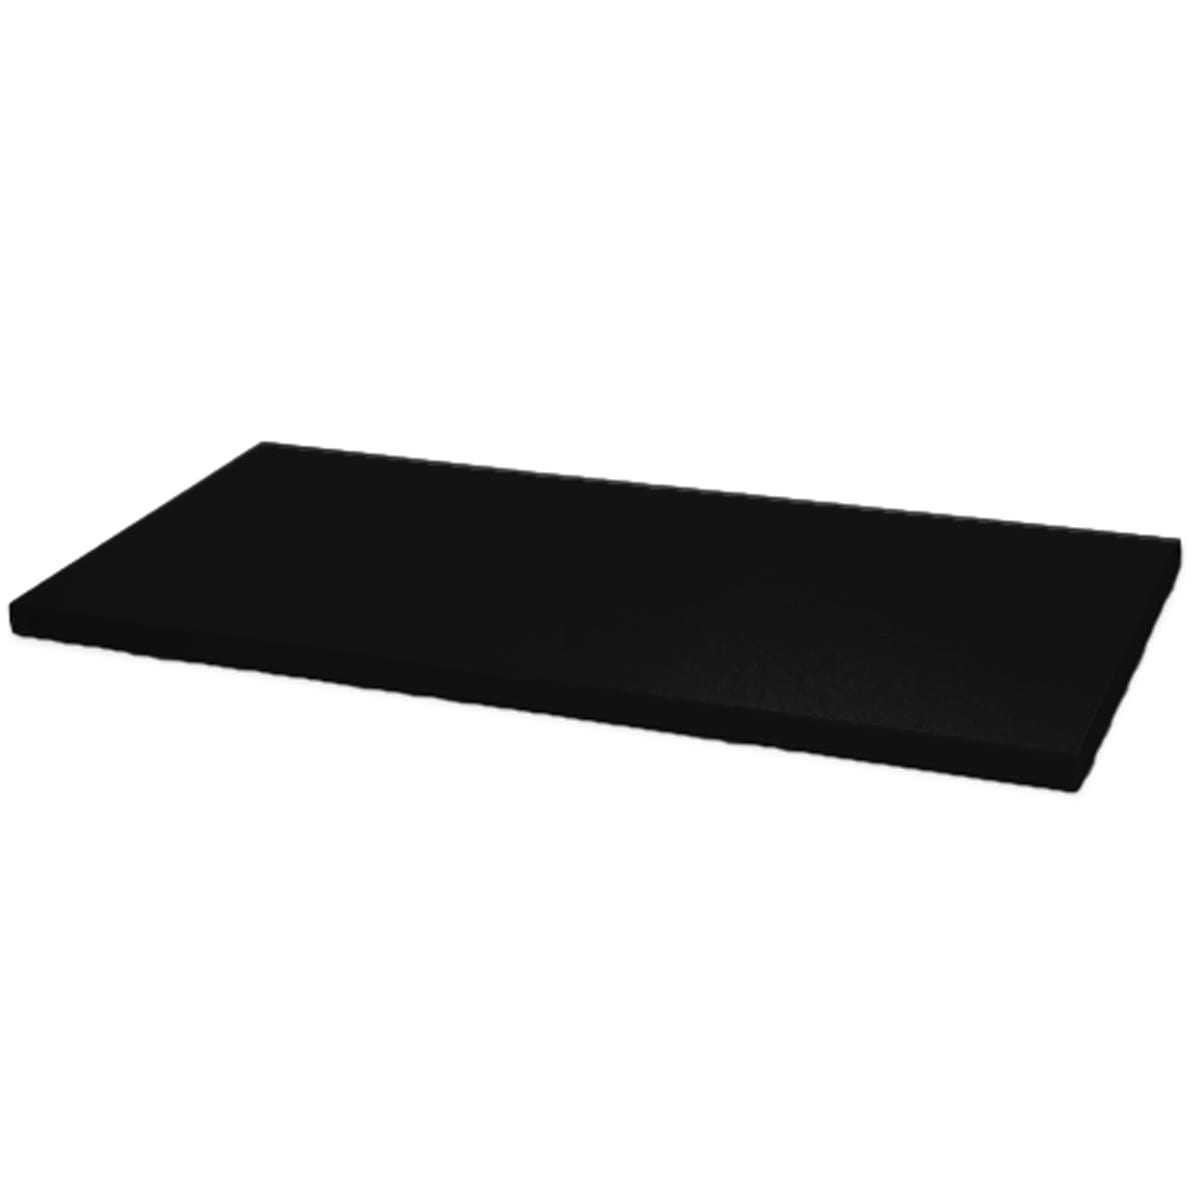 melamine shelf black